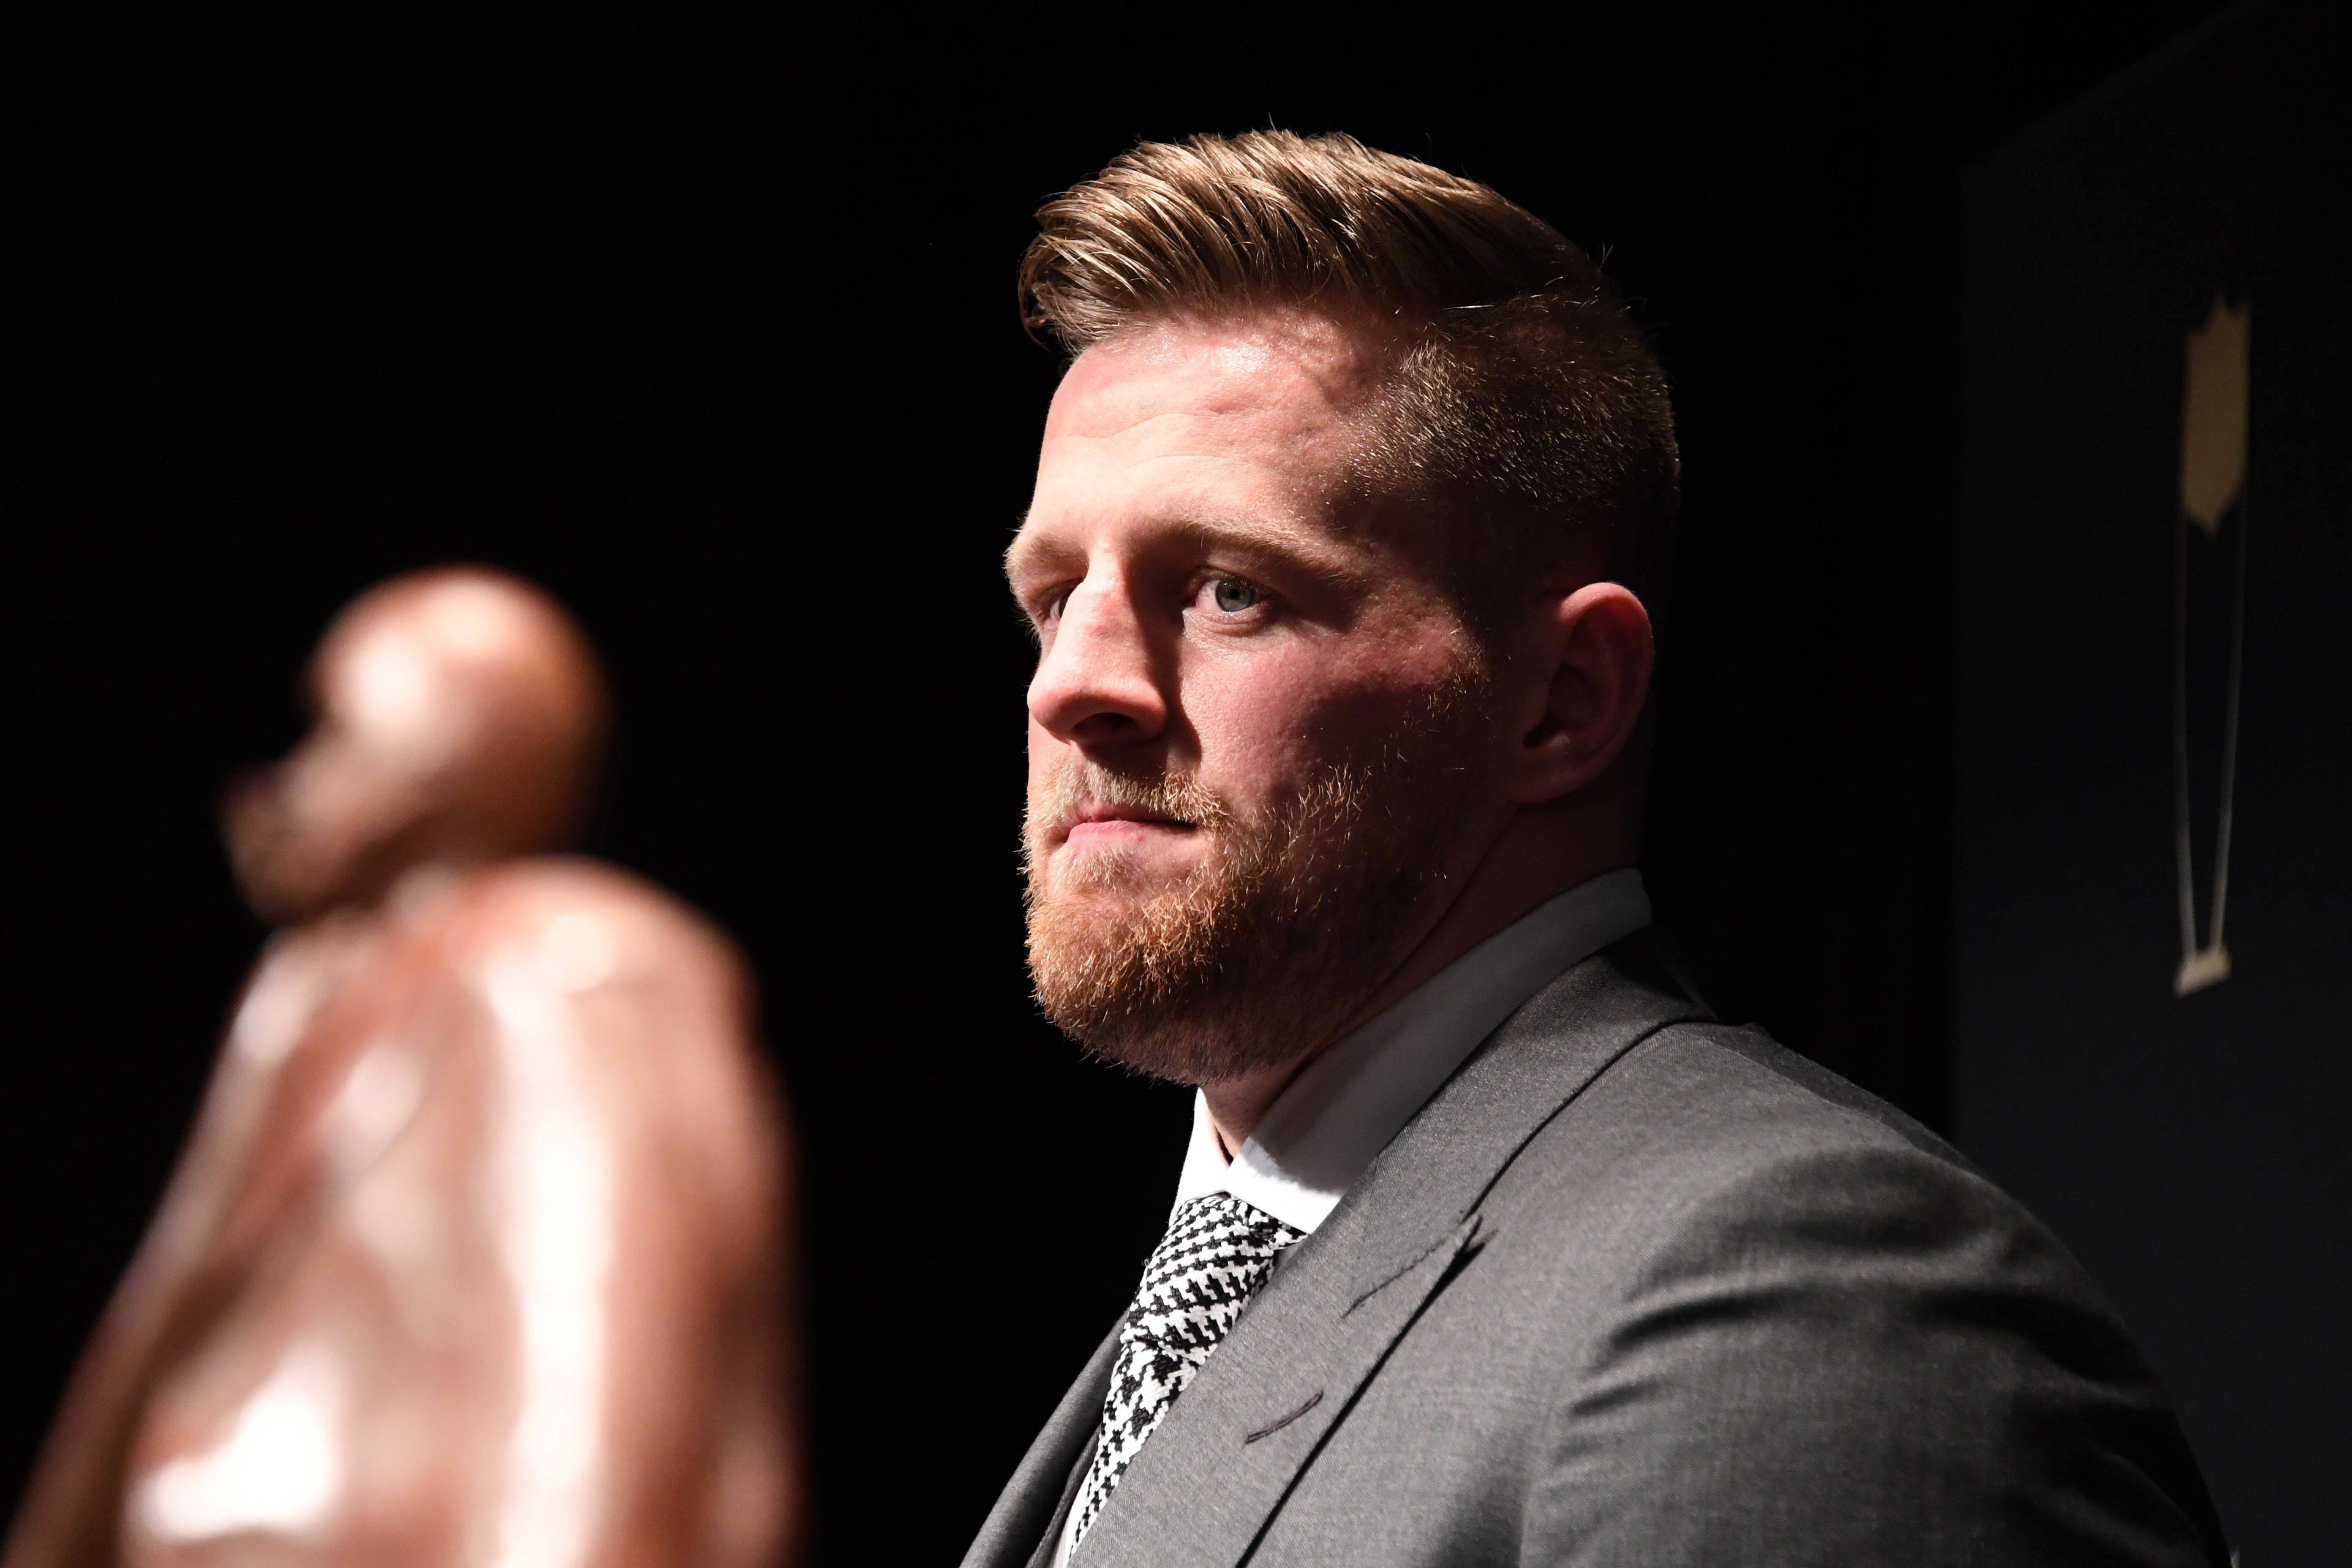 Feb 3, 2018; Minneapolis, MN, USA; Walter Payton NFL Man of the Year winner J.J. Watt of the Houston Texans during media availabilities during the NFL Honors show at Cyrus Northrop Memorial Auditorium at the University of Minnesota. Mandatory Credit: Kirby Lee-USA TODAY Sports